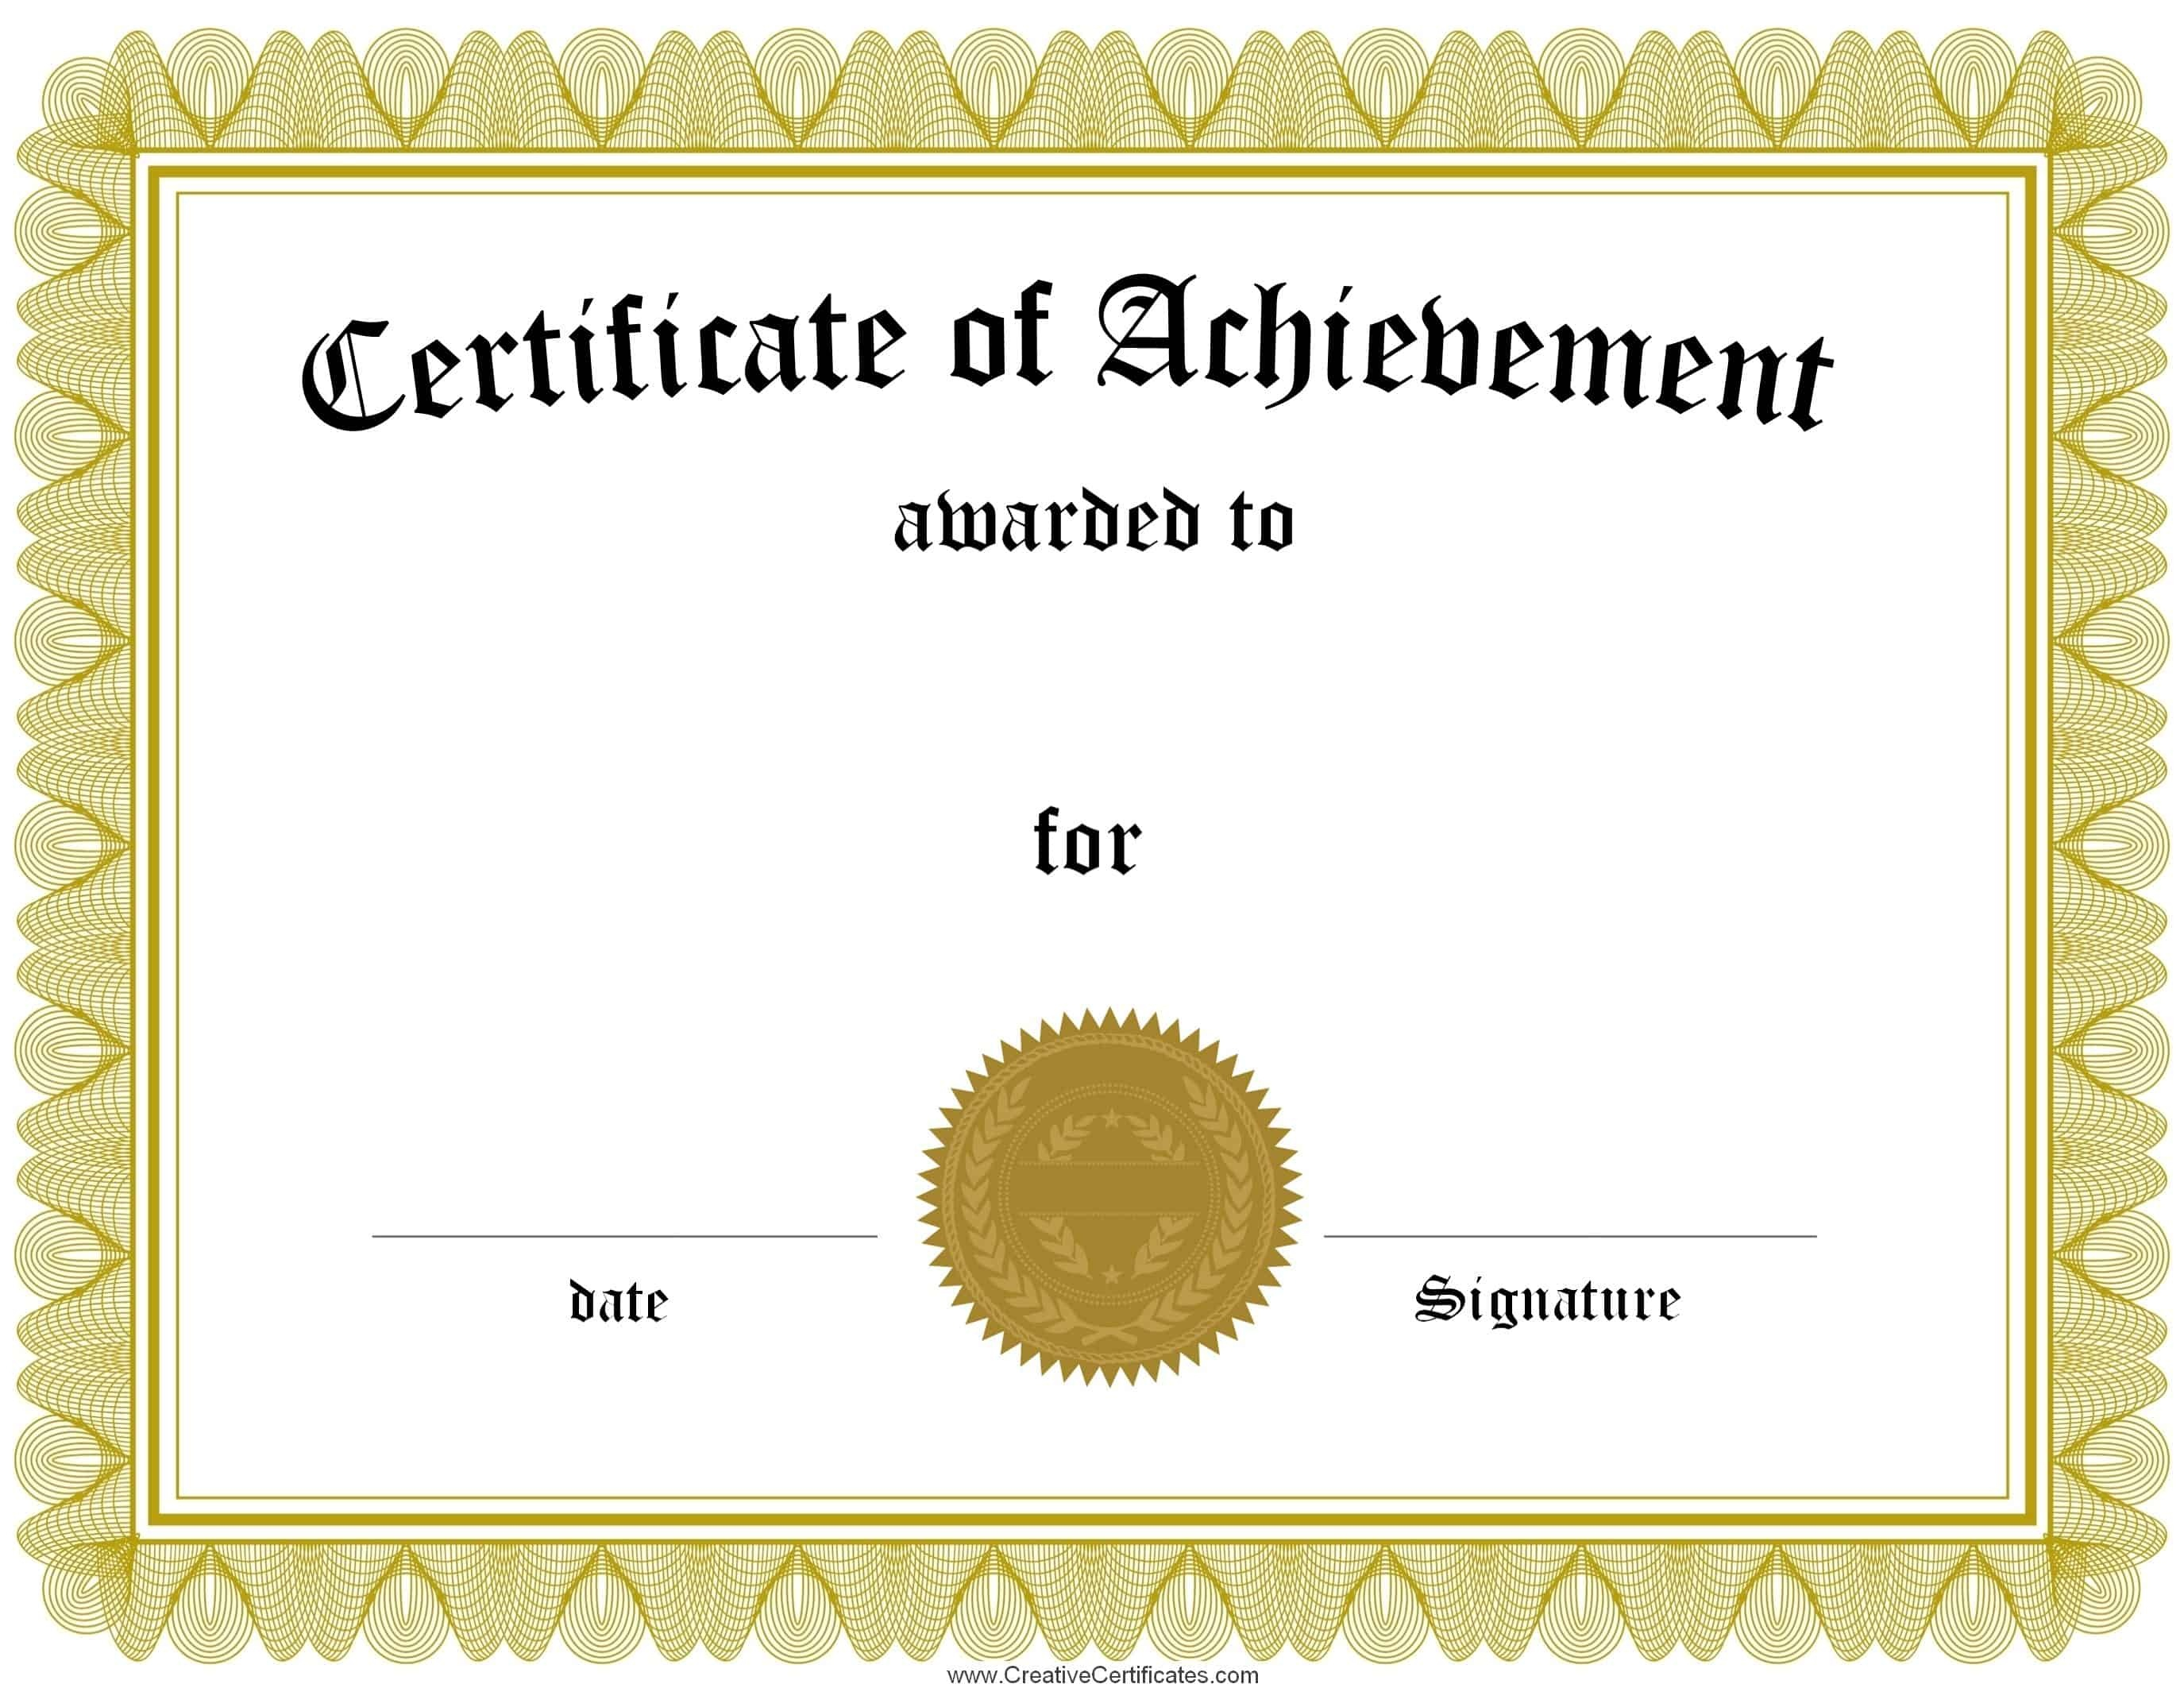 Free Customizable Certificate Of Achievement - Free Printable Blank Certificate Templates